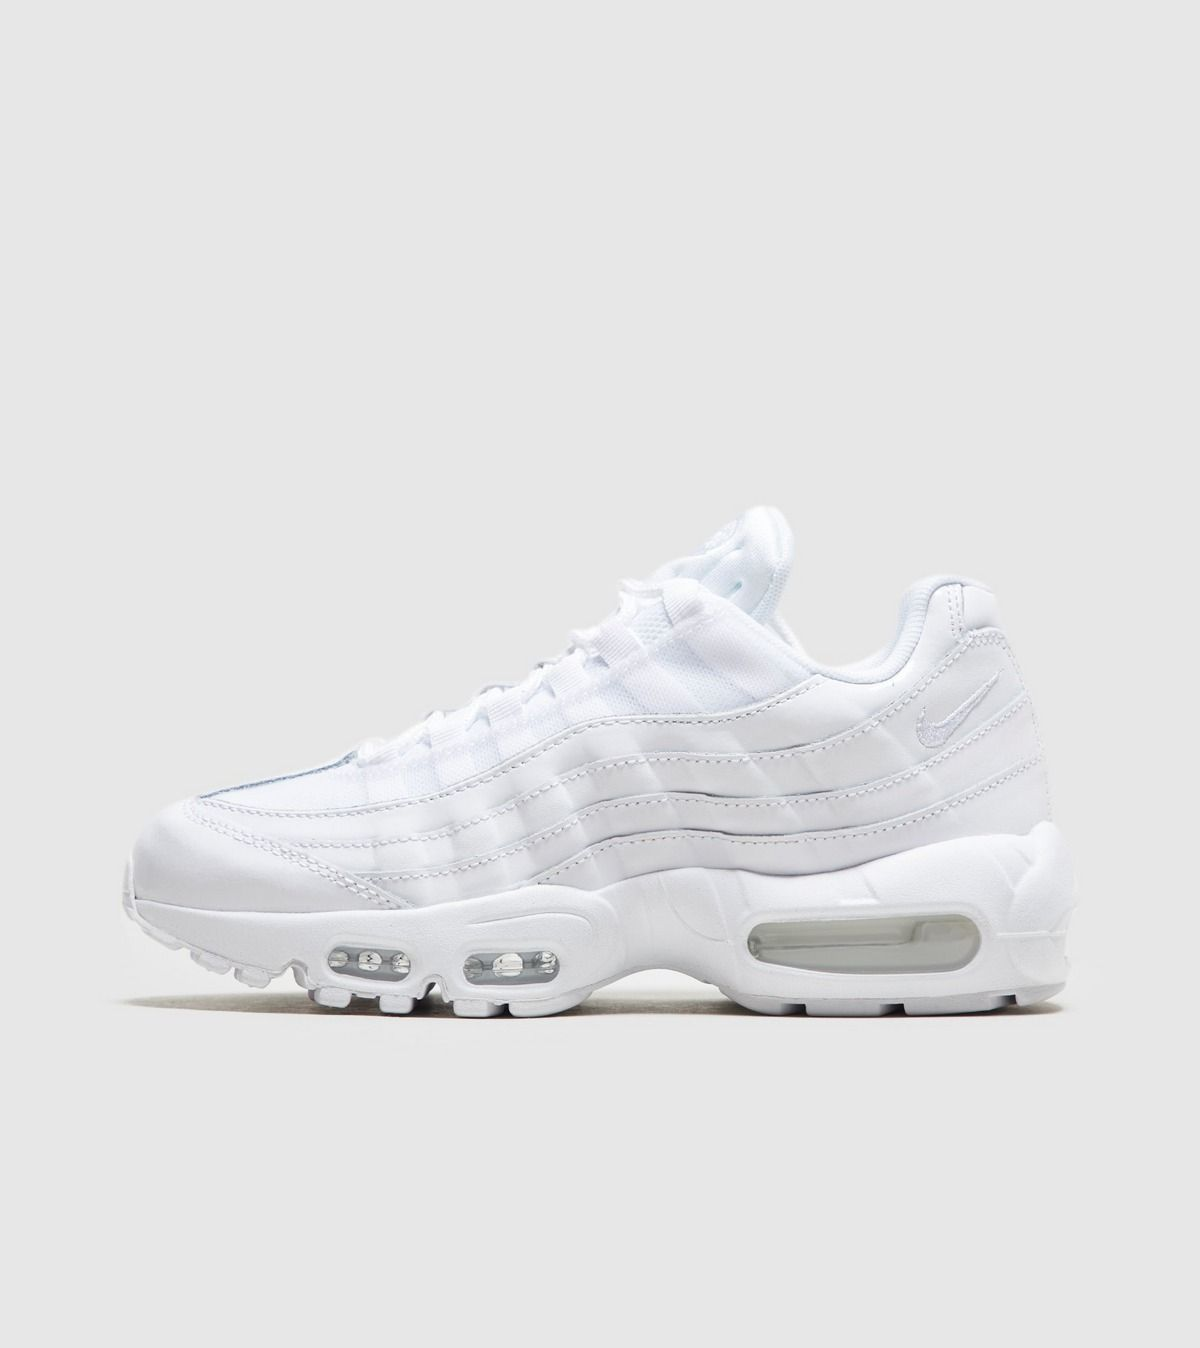 Nike Air Max 95 Dames | Size? in 2020 | Nike air max, Nike ...